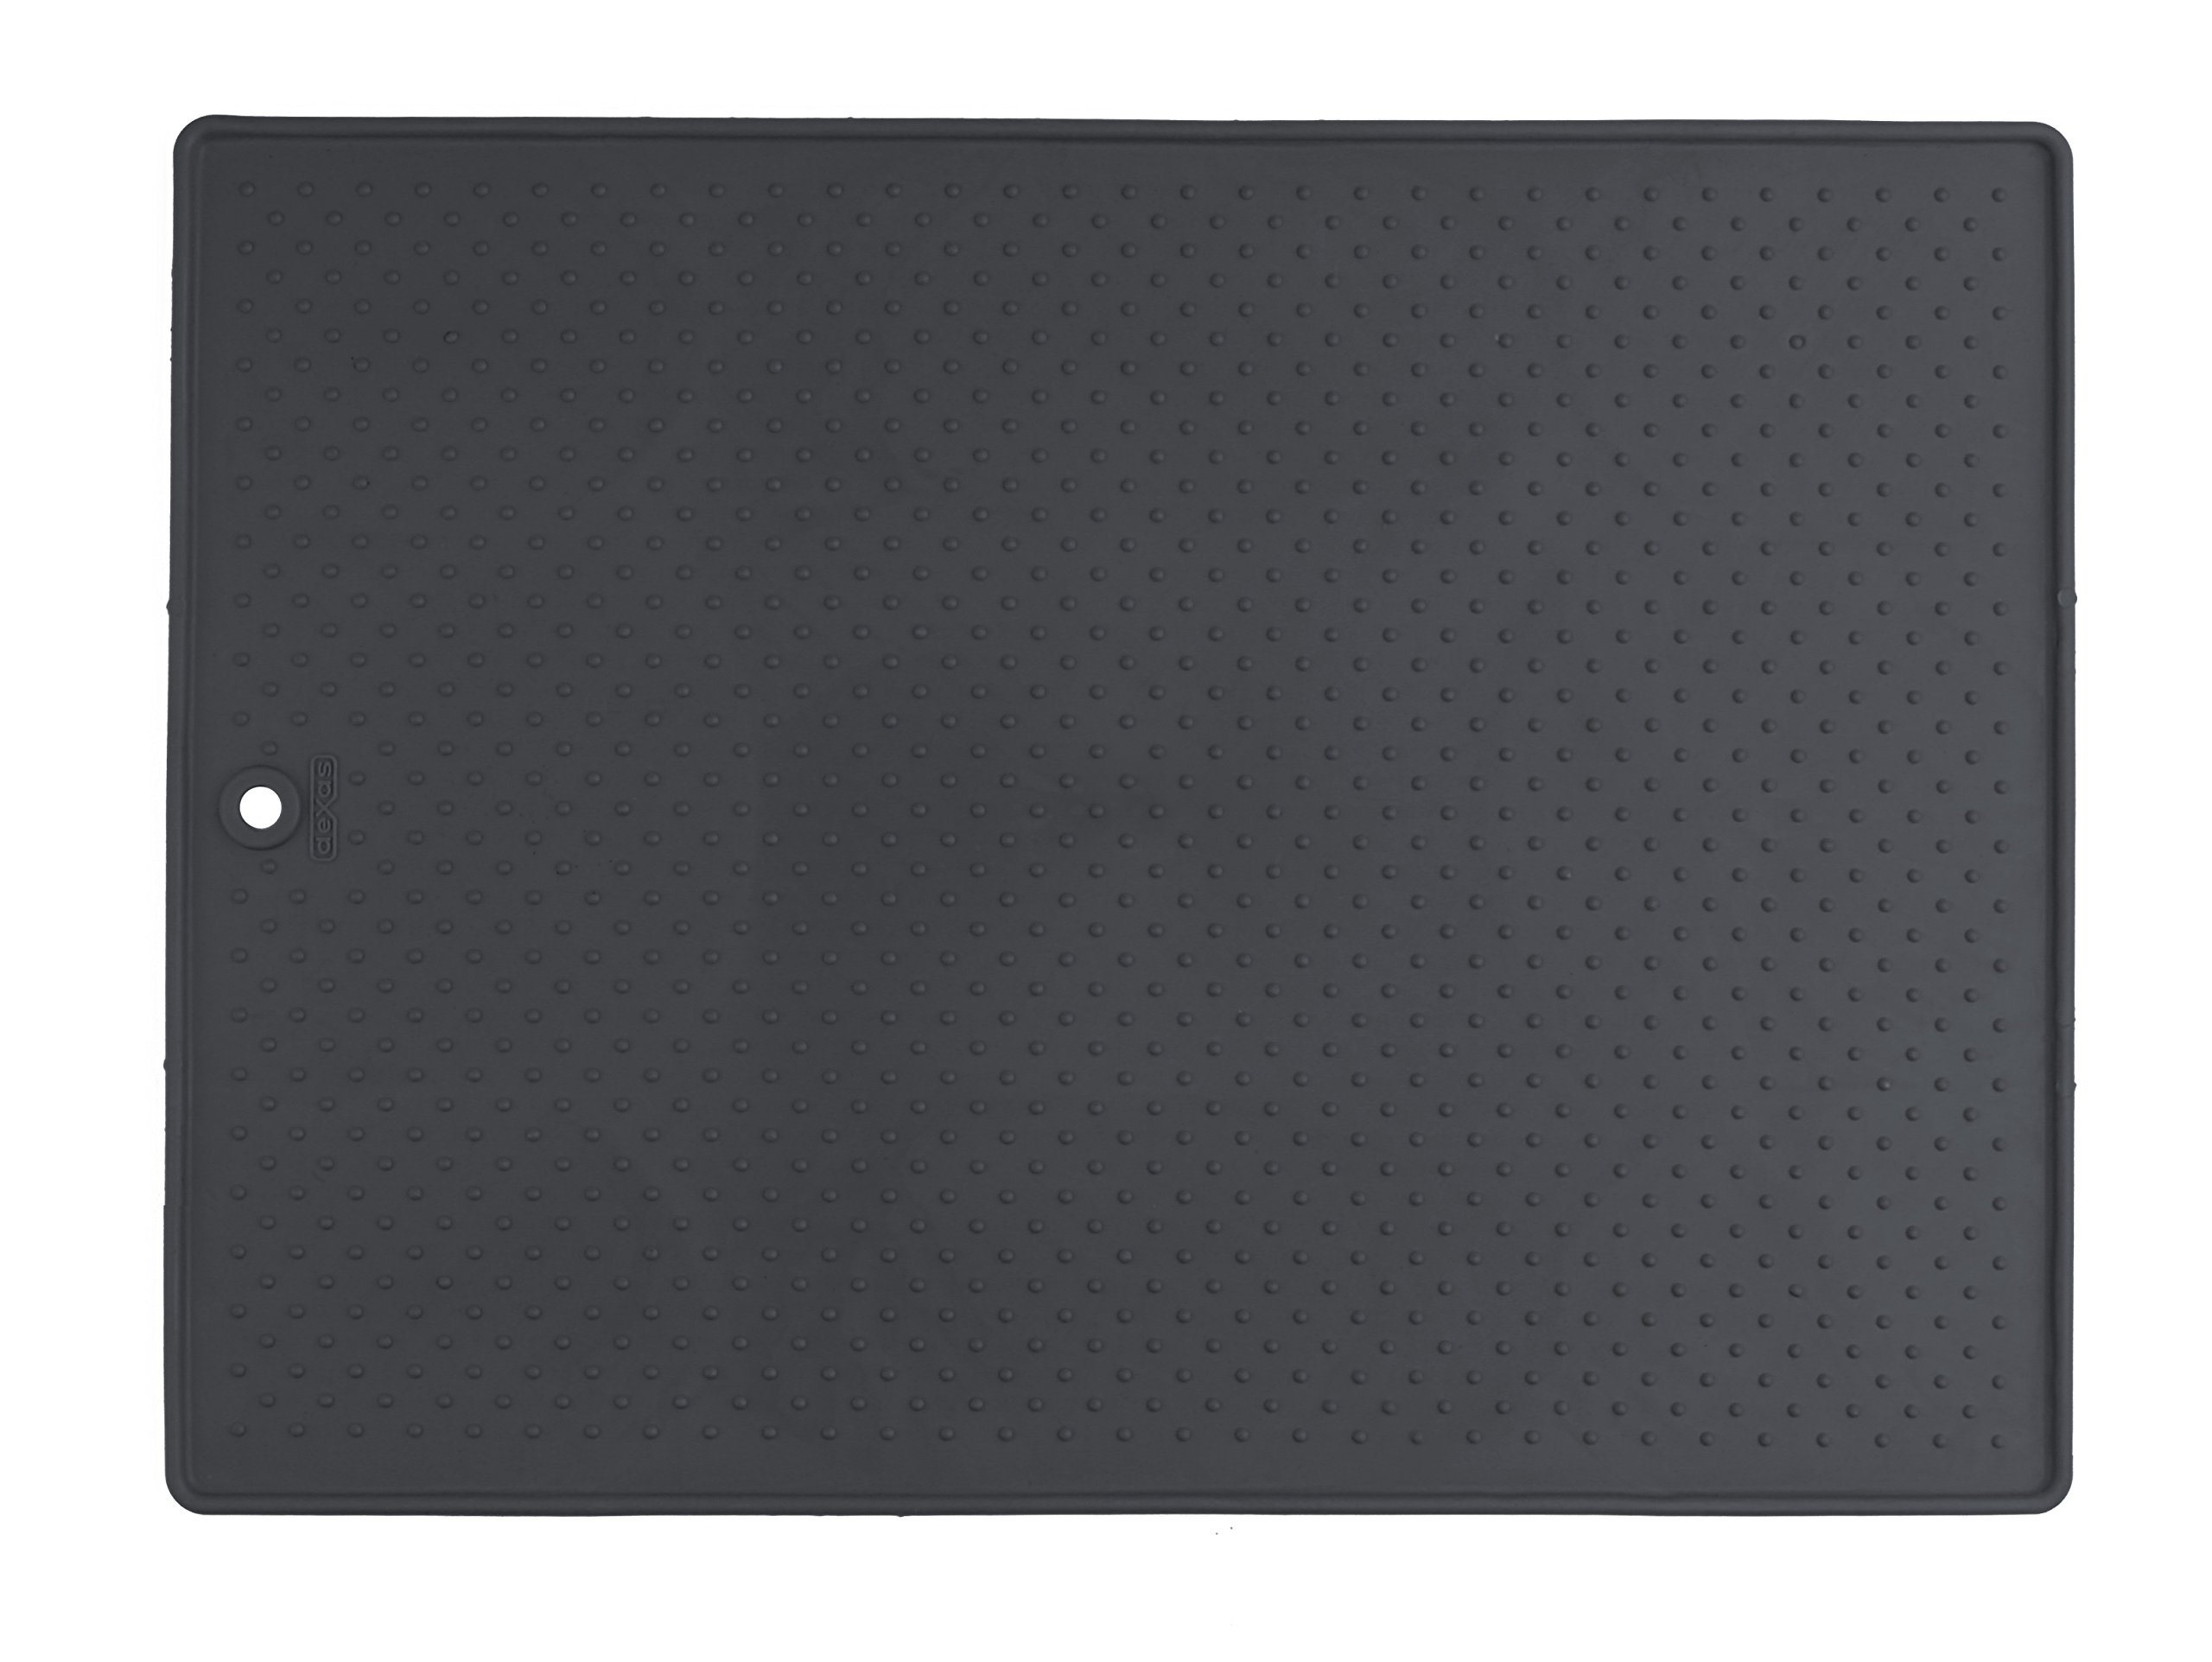 Dexas  Grippmat for Pet Bowls, 17 by 23.5 inches, Gray